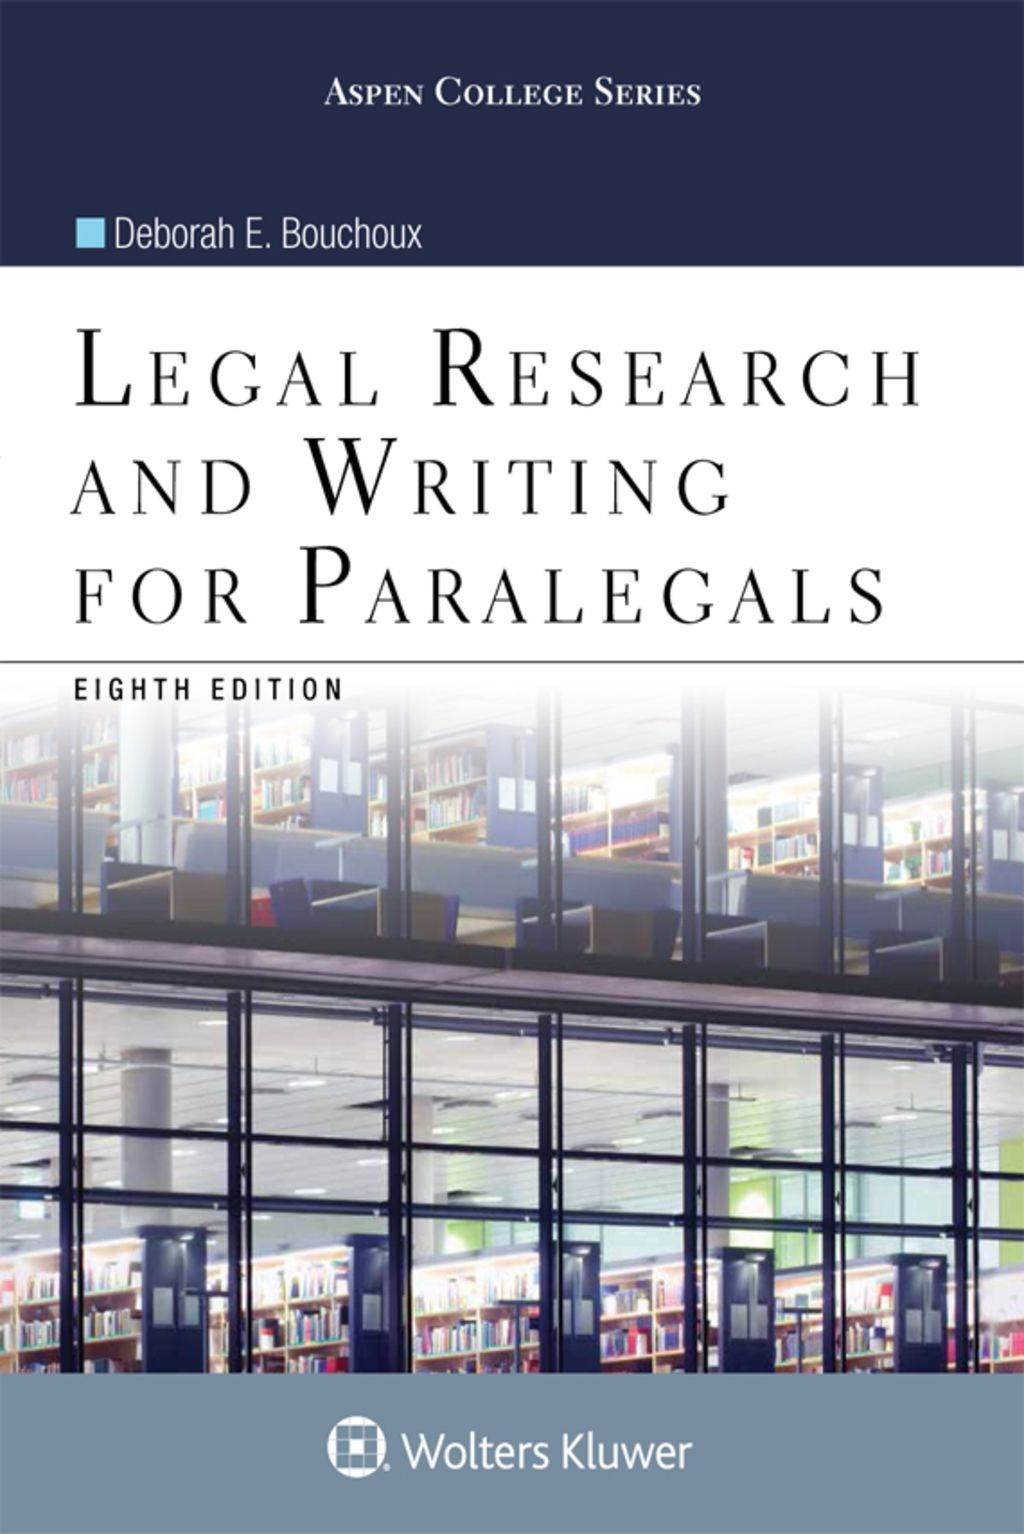 Legal Research and Writing for Paralegals (eBook) is part of Paralegal, Paralegal student, Research writing, Law books, Writing skills, Writing strategies - By Deborah E  Bouchoux PRINT ISBN 9781454873358 ETEXT ISBN 9781454881698 Edition 8